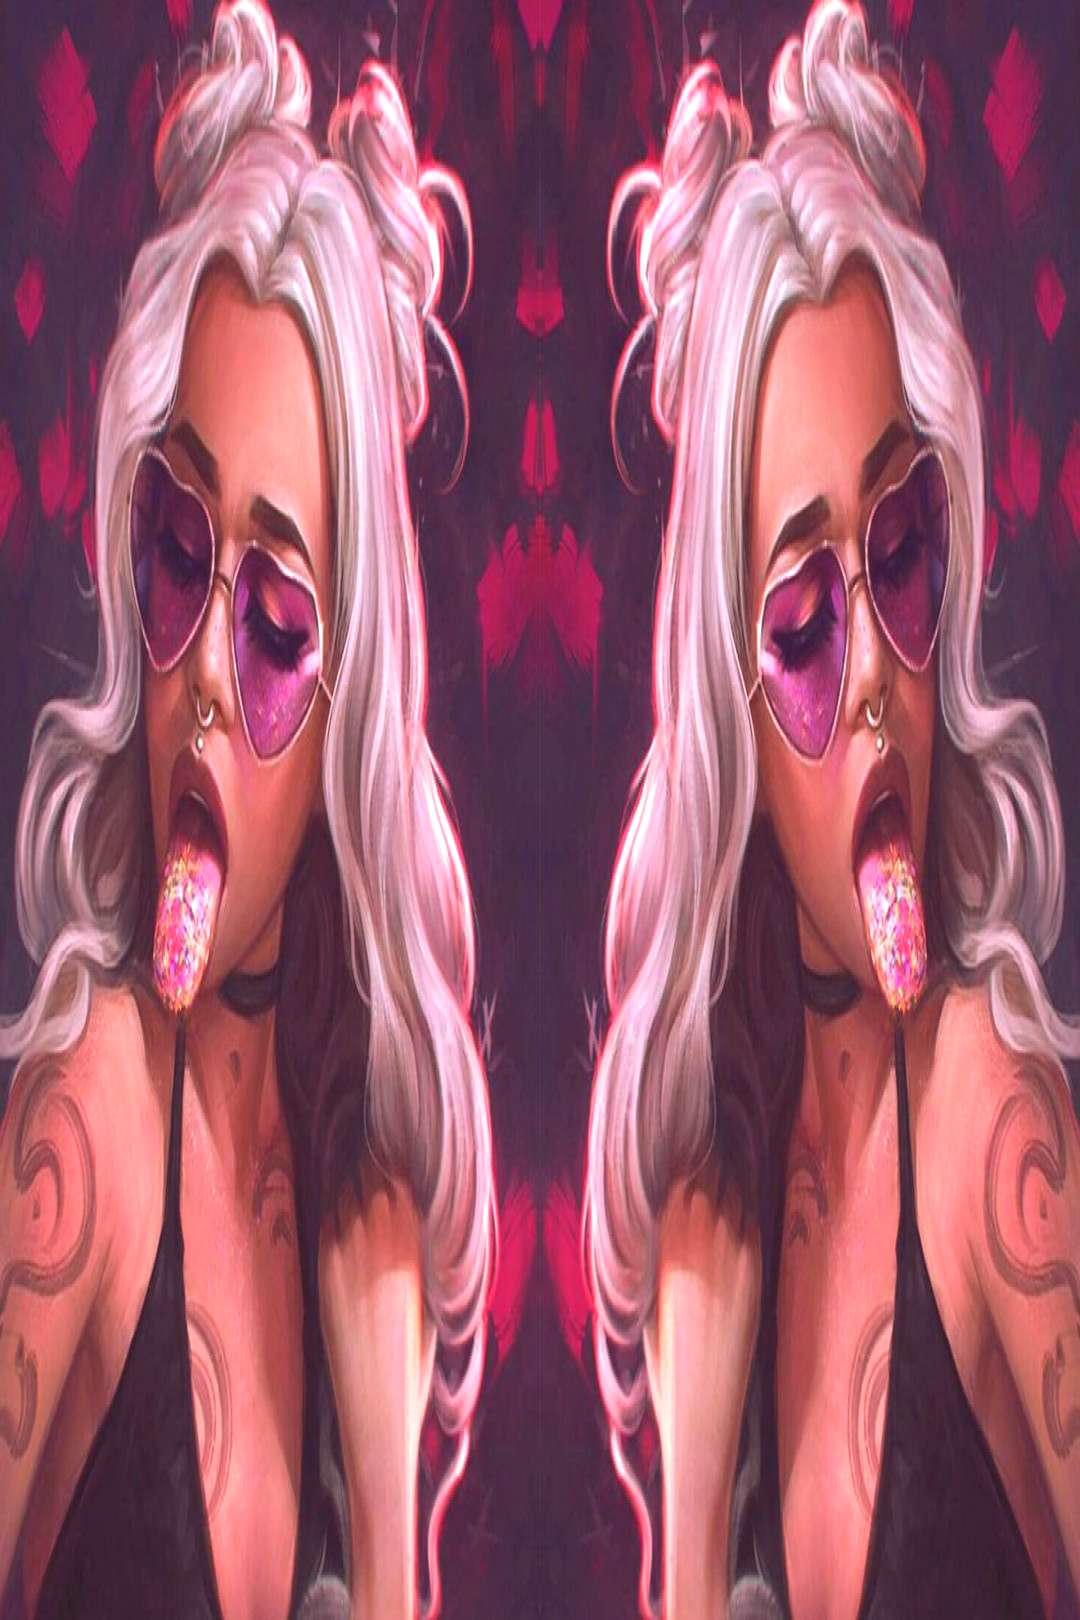 neon lights science fiction fantasy art women angel Woman in Red futuristic city women with glasses